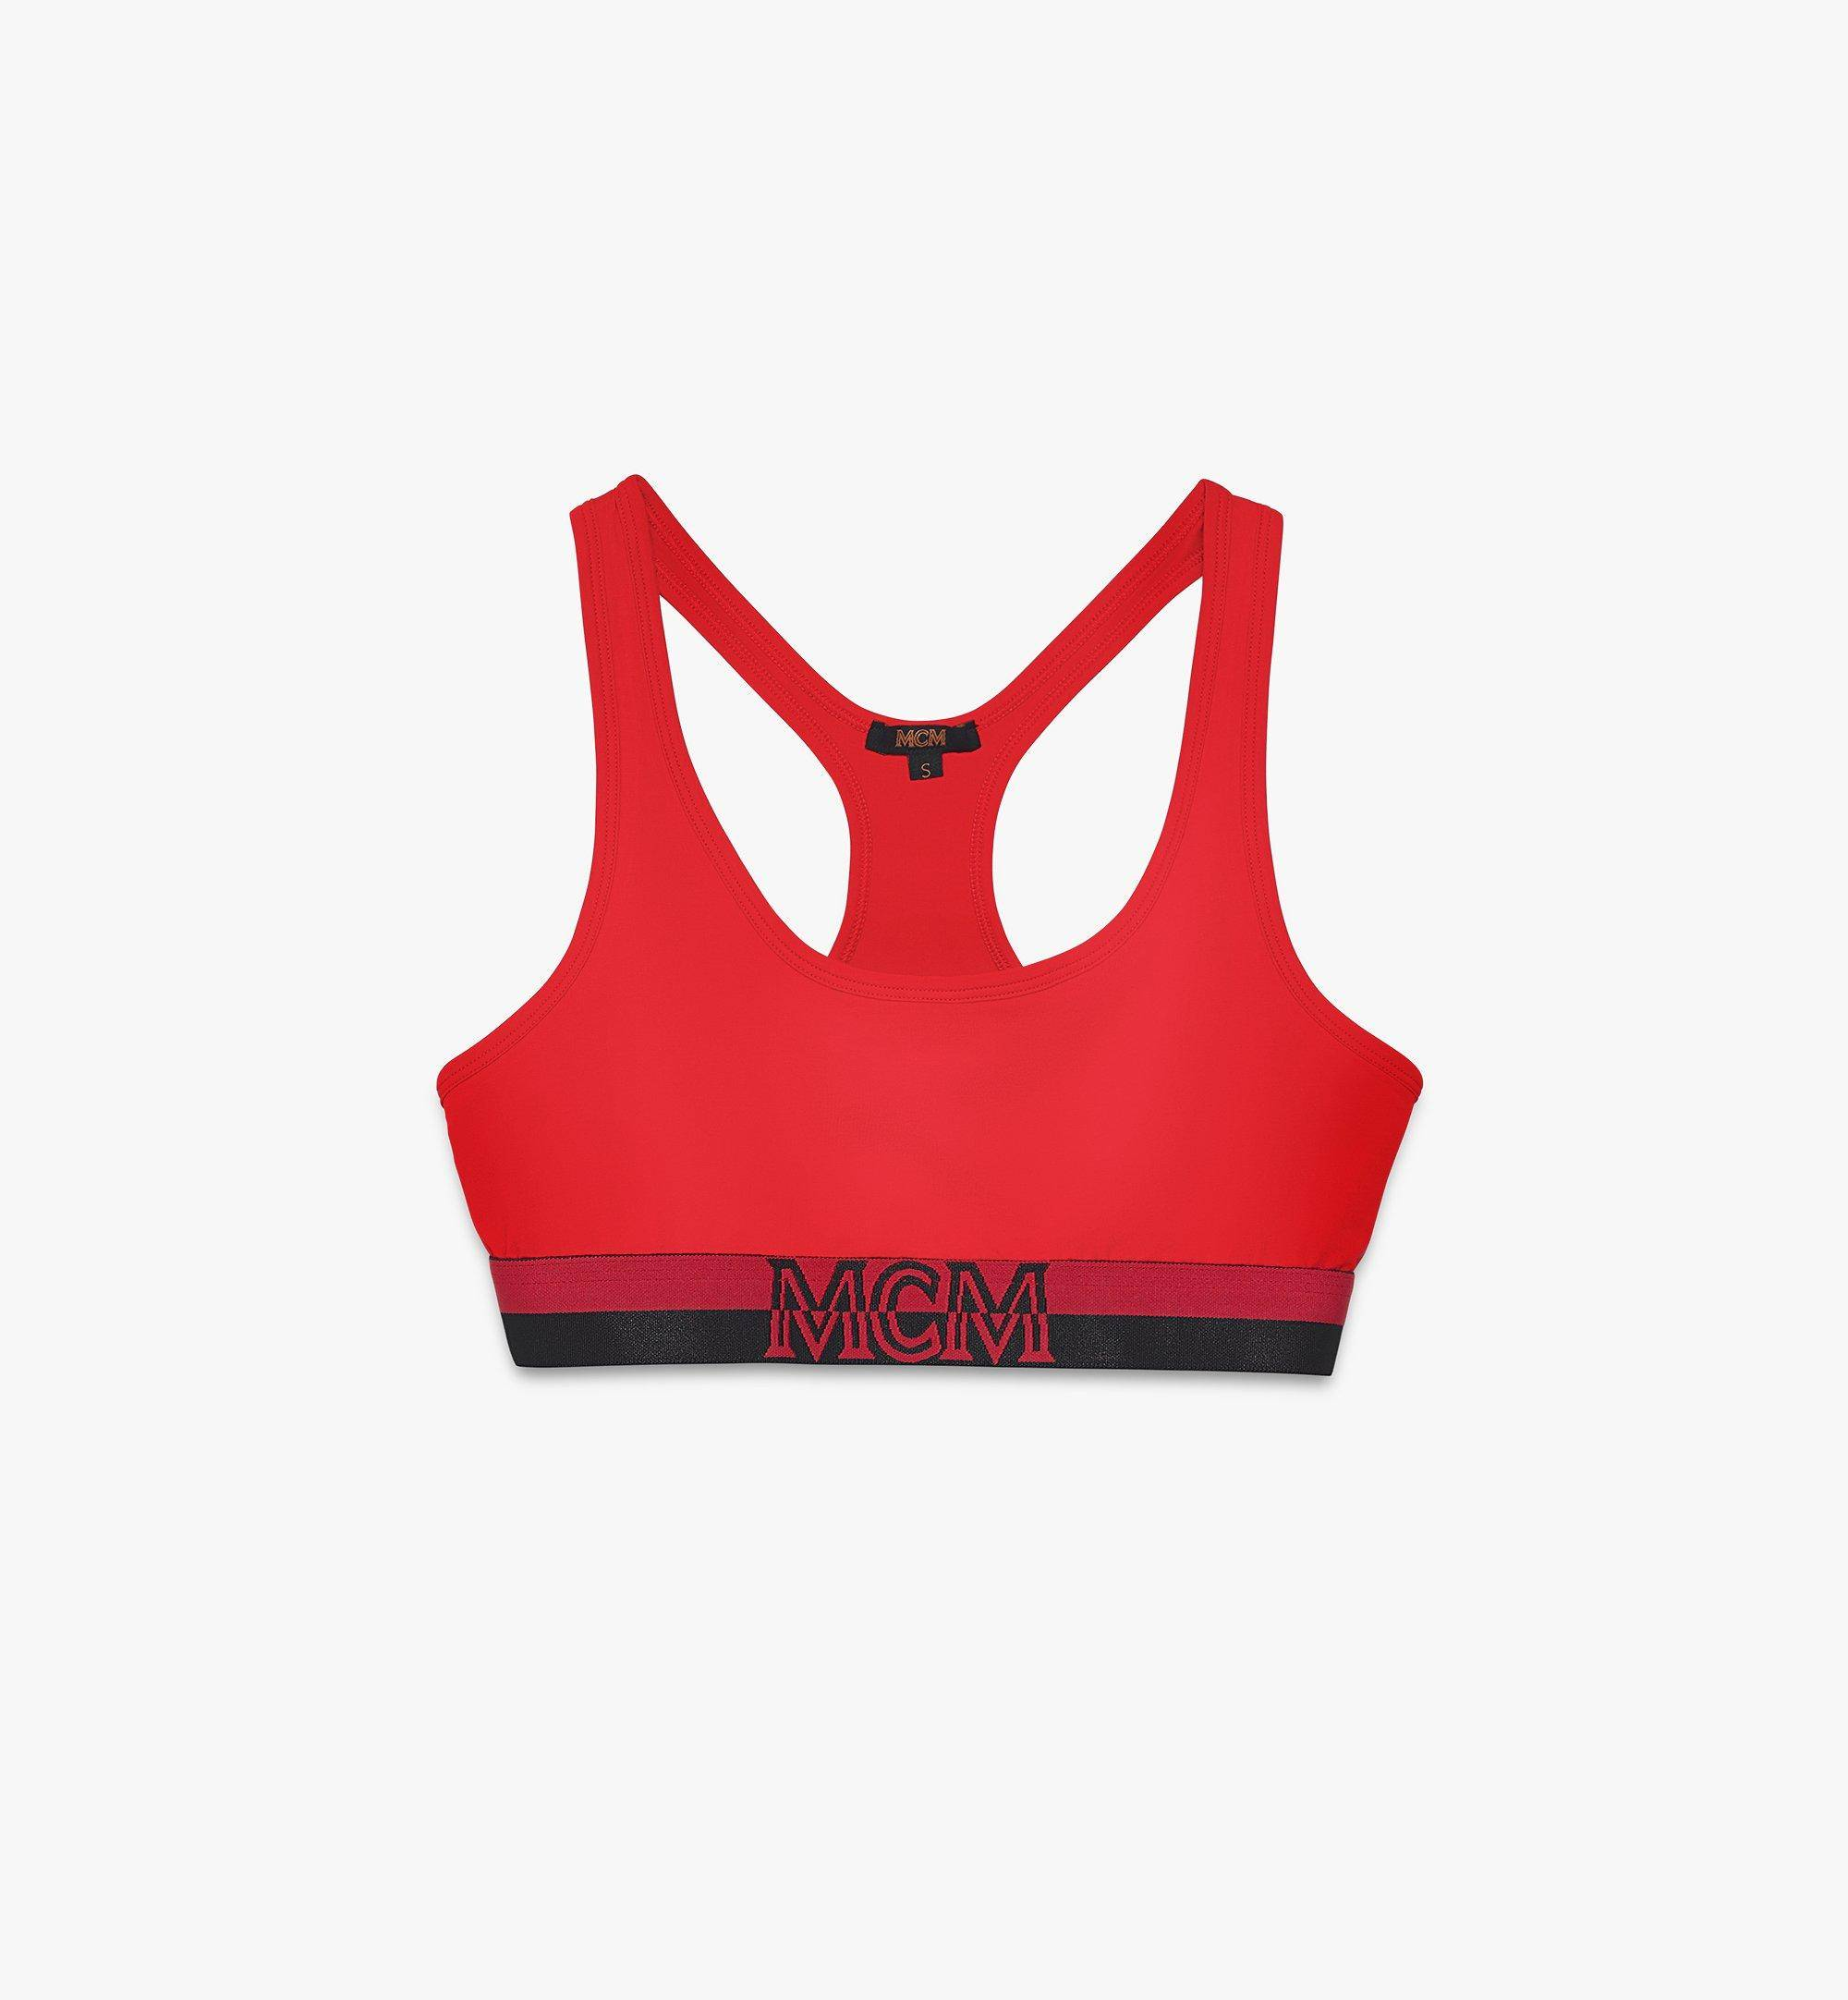 MCM Women's 1976 Sports Bra  - Red - Size: Small